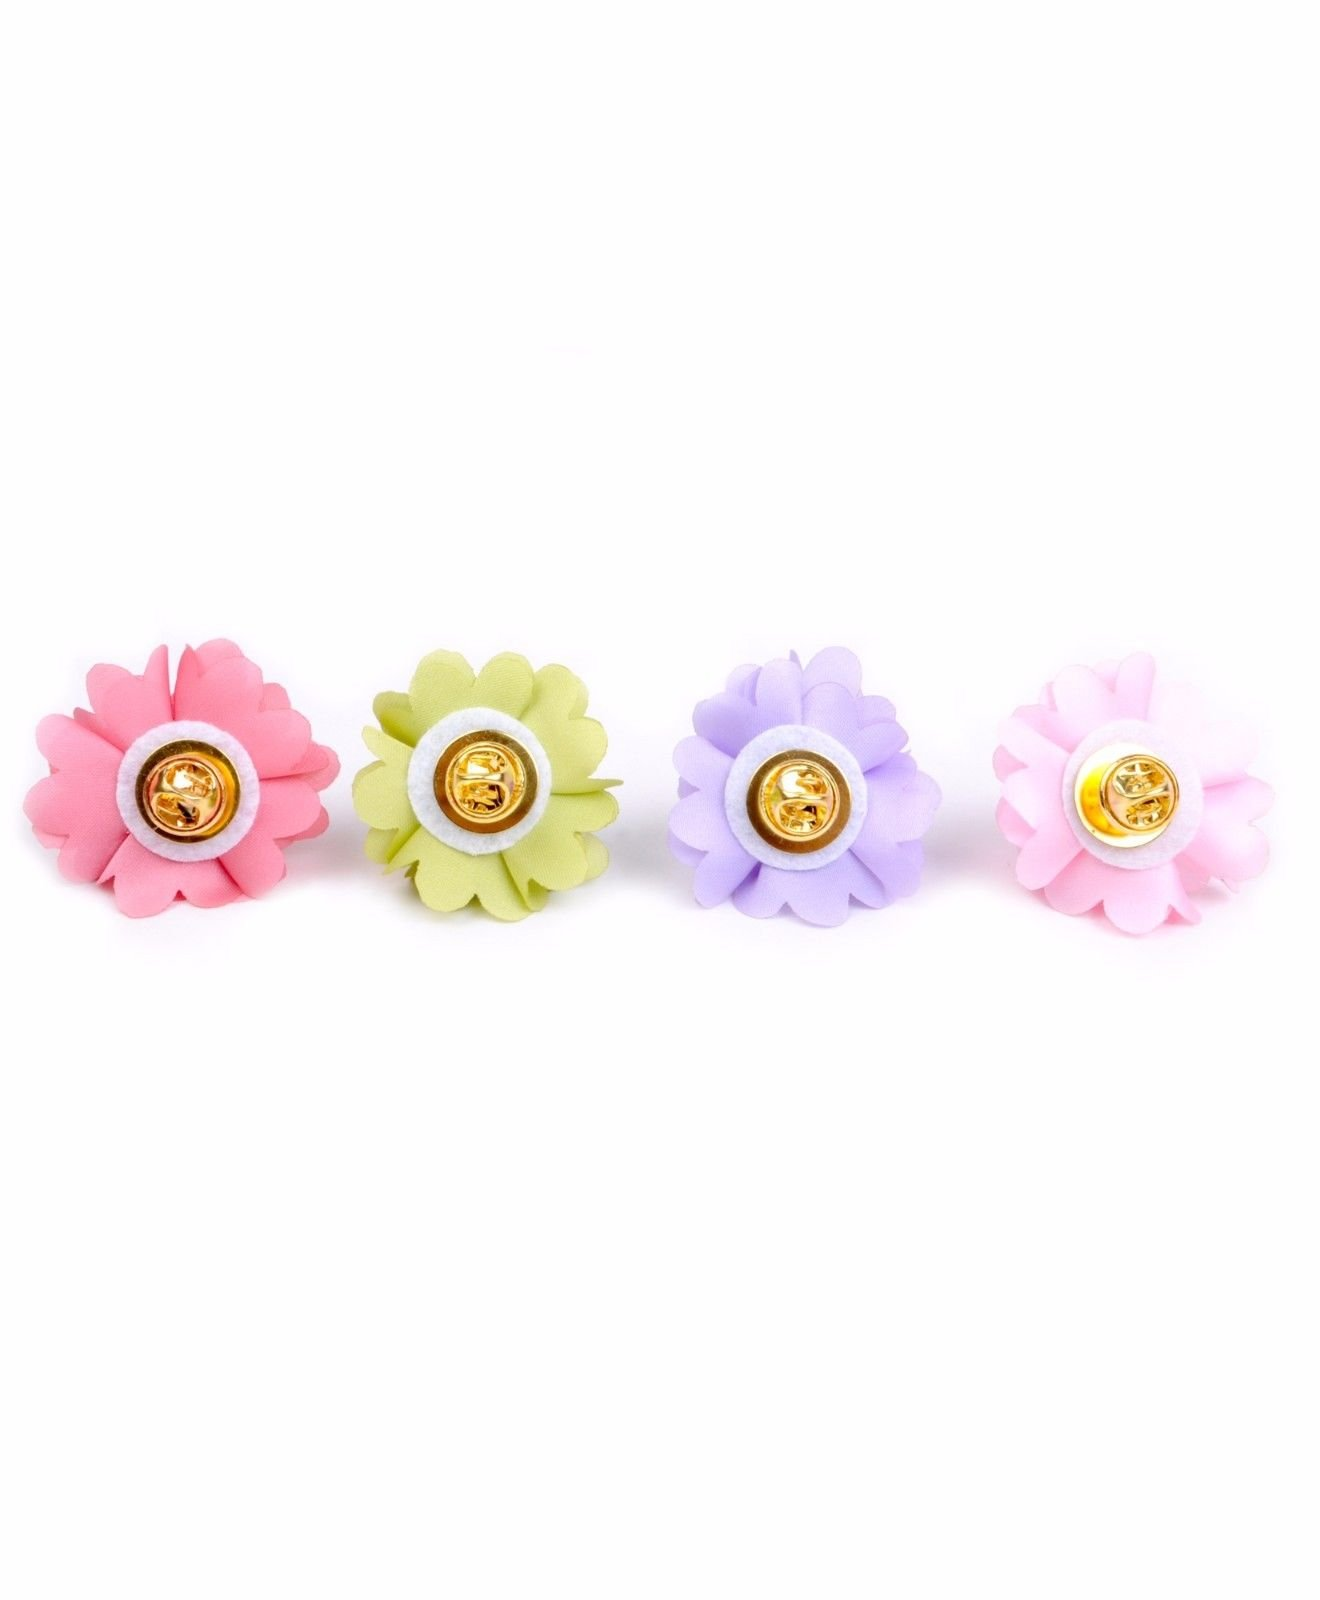 BG-Mini-Bouquet-Clutch-Back-Flower-Tuxedo-Suit-Lapel-Pins-Boutonniere-4-Pack-Set thumbnail 13